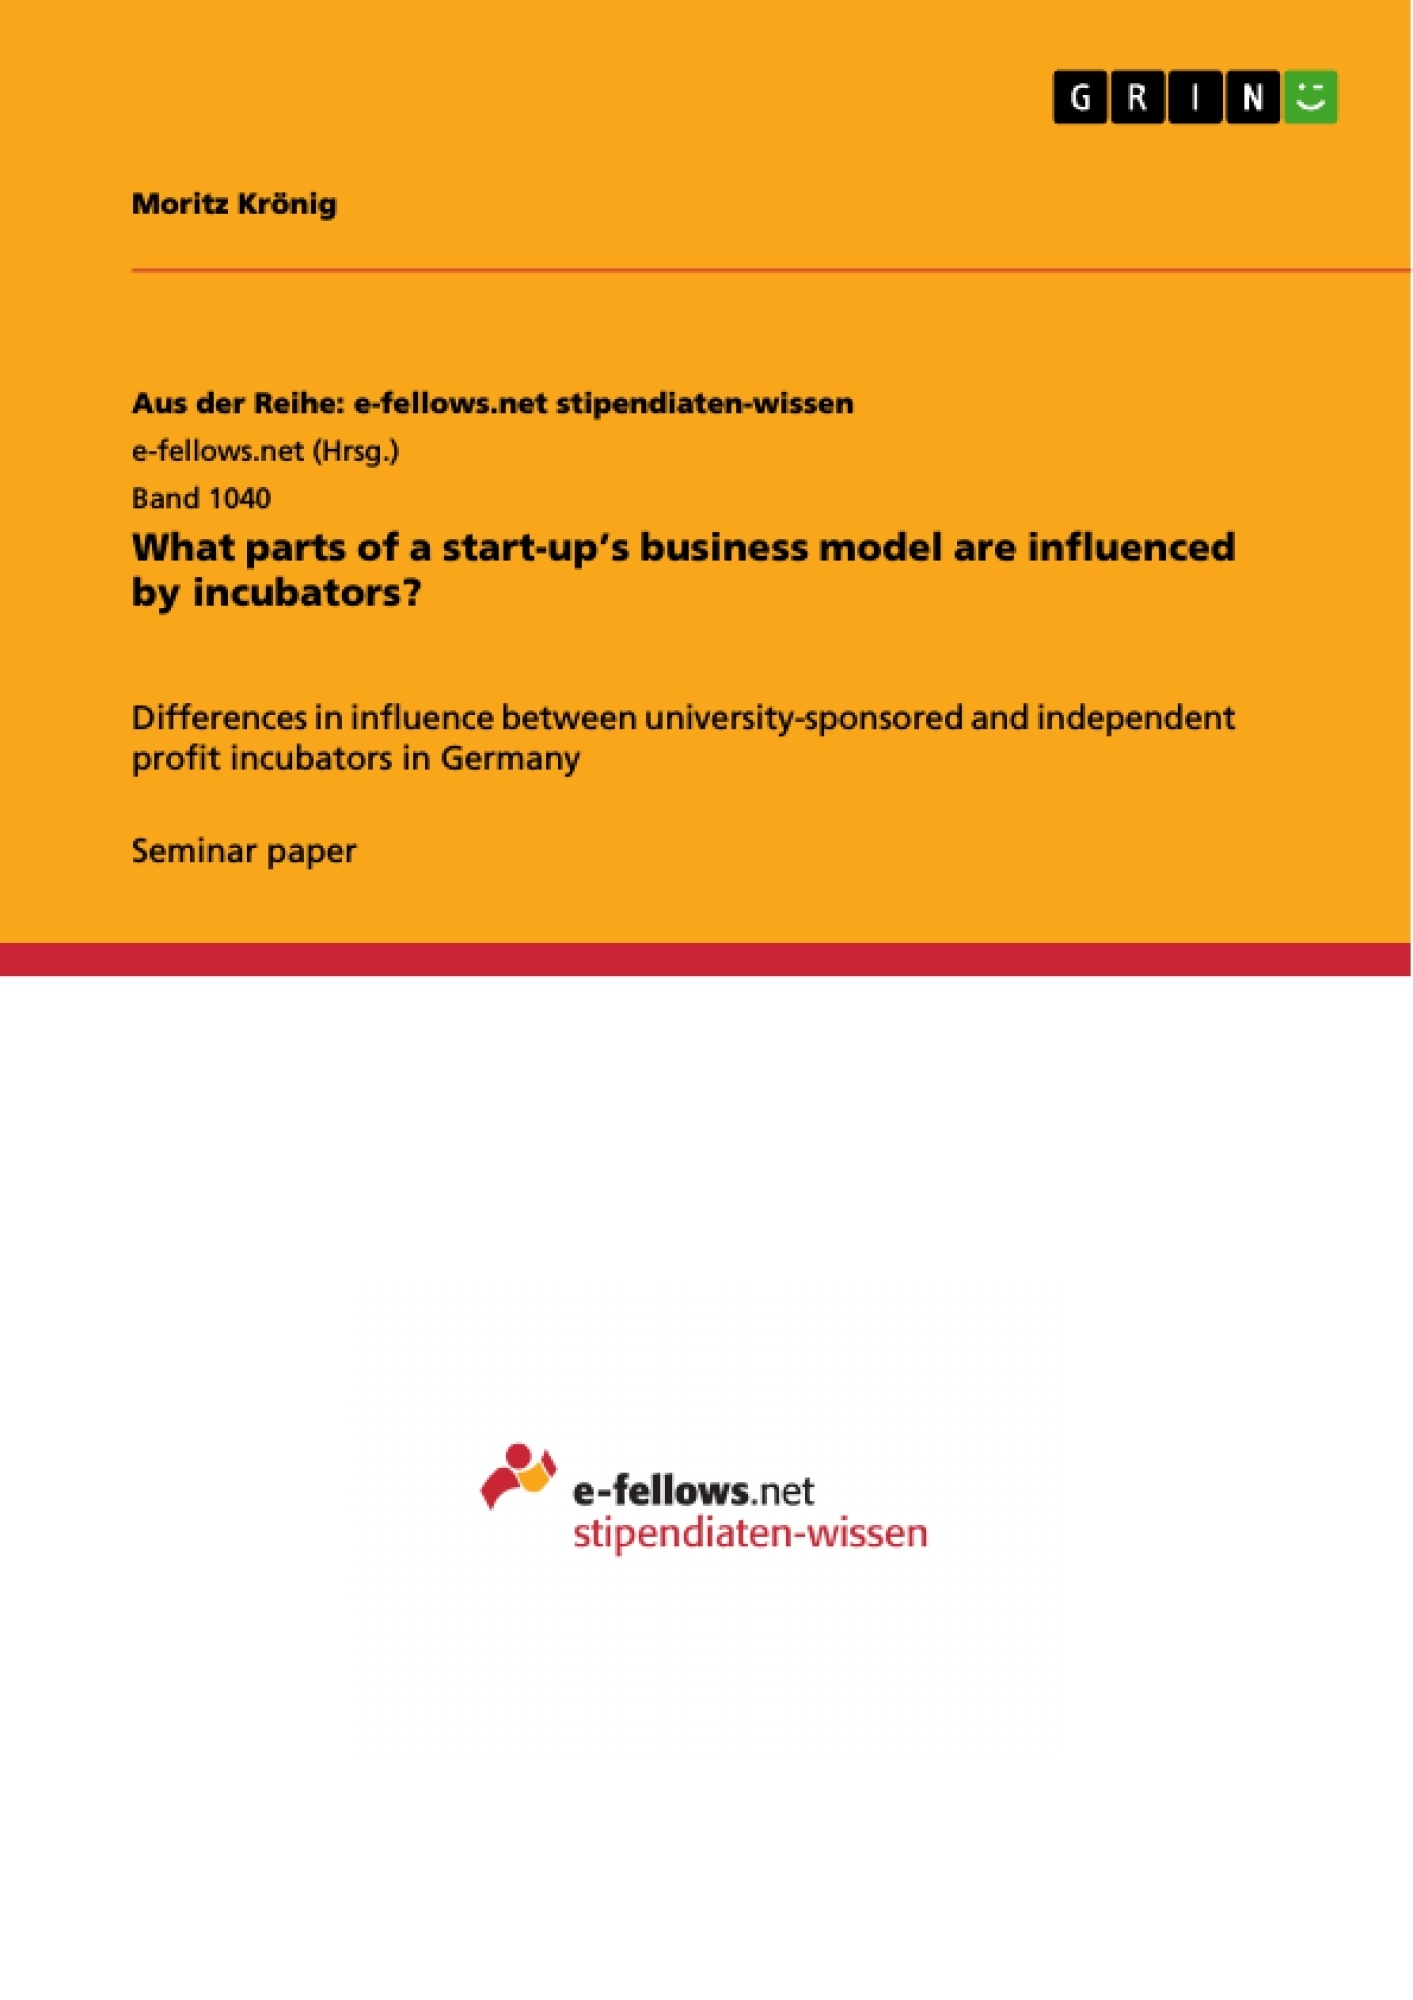 Title: What parts of a start-up's business model are influenced by incubators?